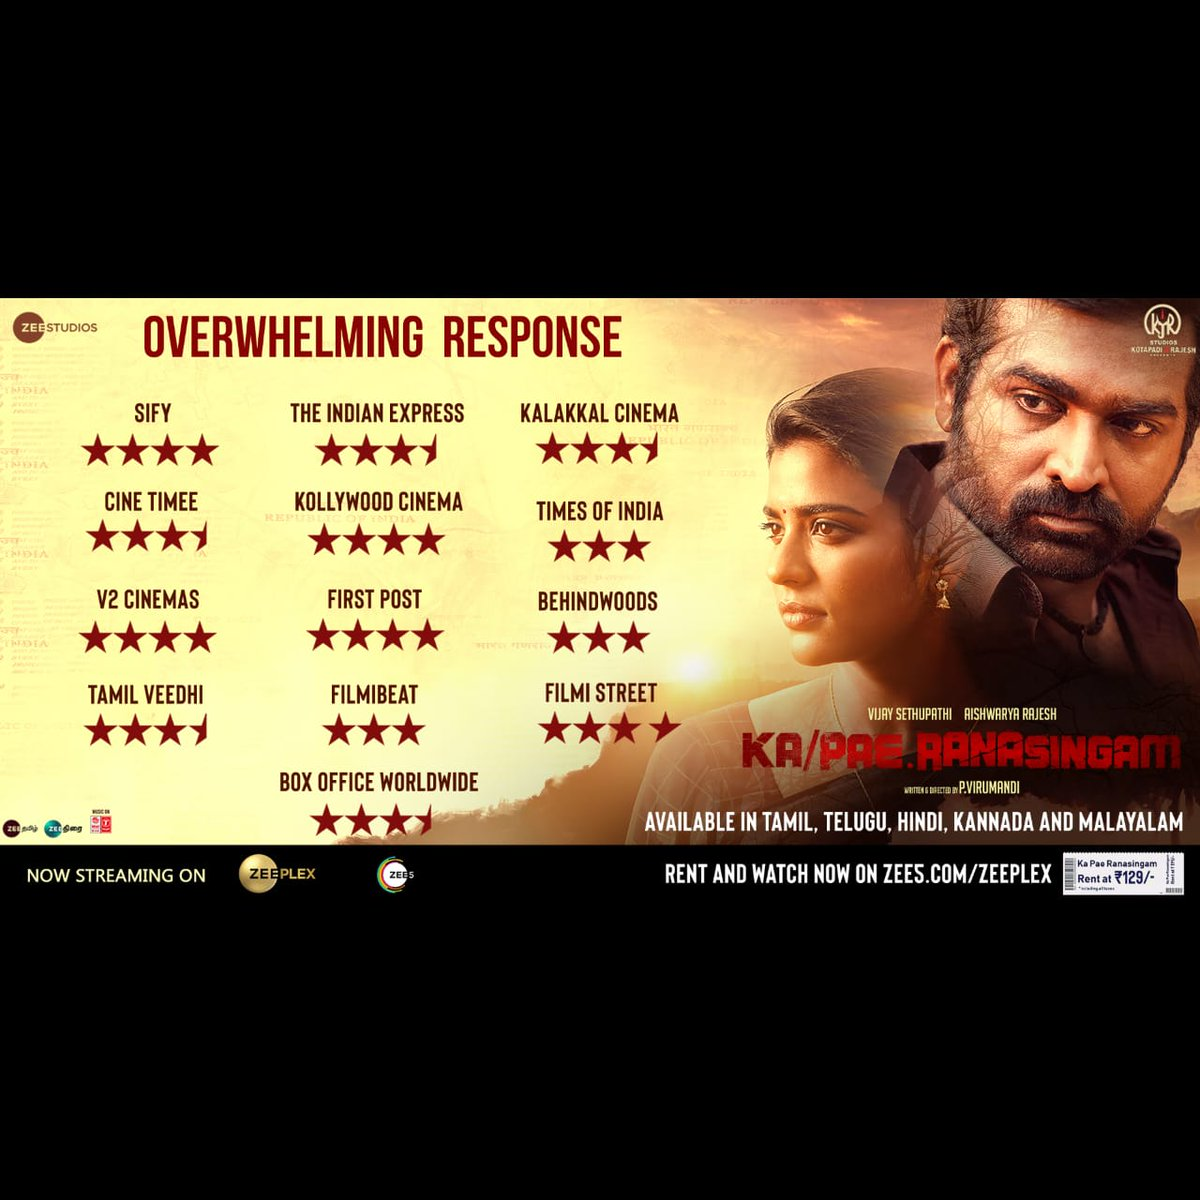 Appreciated by many #KaPeRanasingam is a must watch of 2020. Get your ticket now @zeeplexofficial for Rs.129 only. The movie is available in #Telugu, #Malayalam, #Kannada & #Hindi https://t.co/KaRQmxBioo @VijaySethuOffl @kjr_studios @aishu_dil  @GhibranOfficial  @ZeeStudios_ https://t.co/QWDPwuPN7A